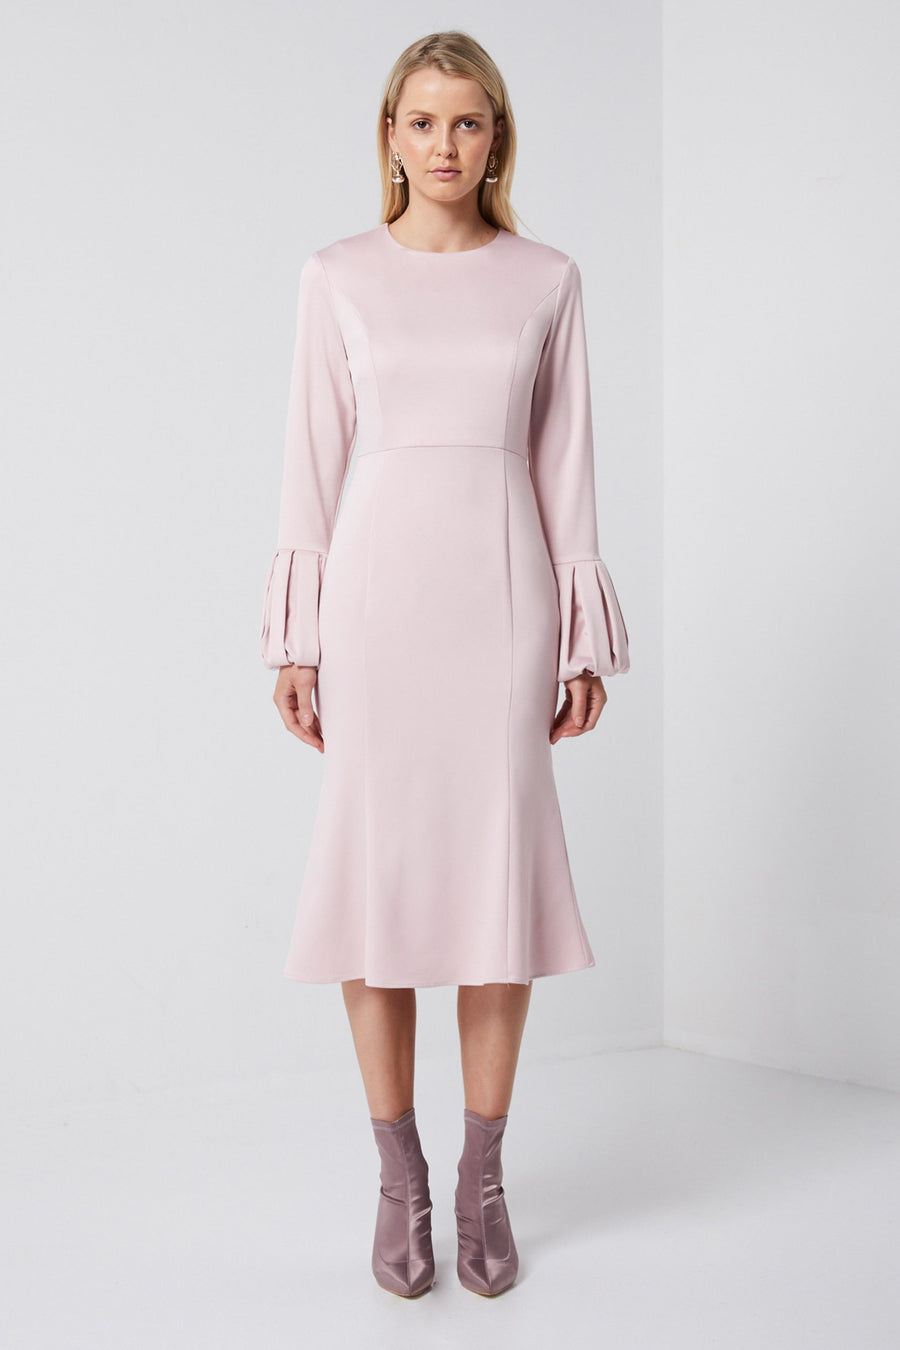 Pink Satin Dress-Elliatt-Showcase Dress